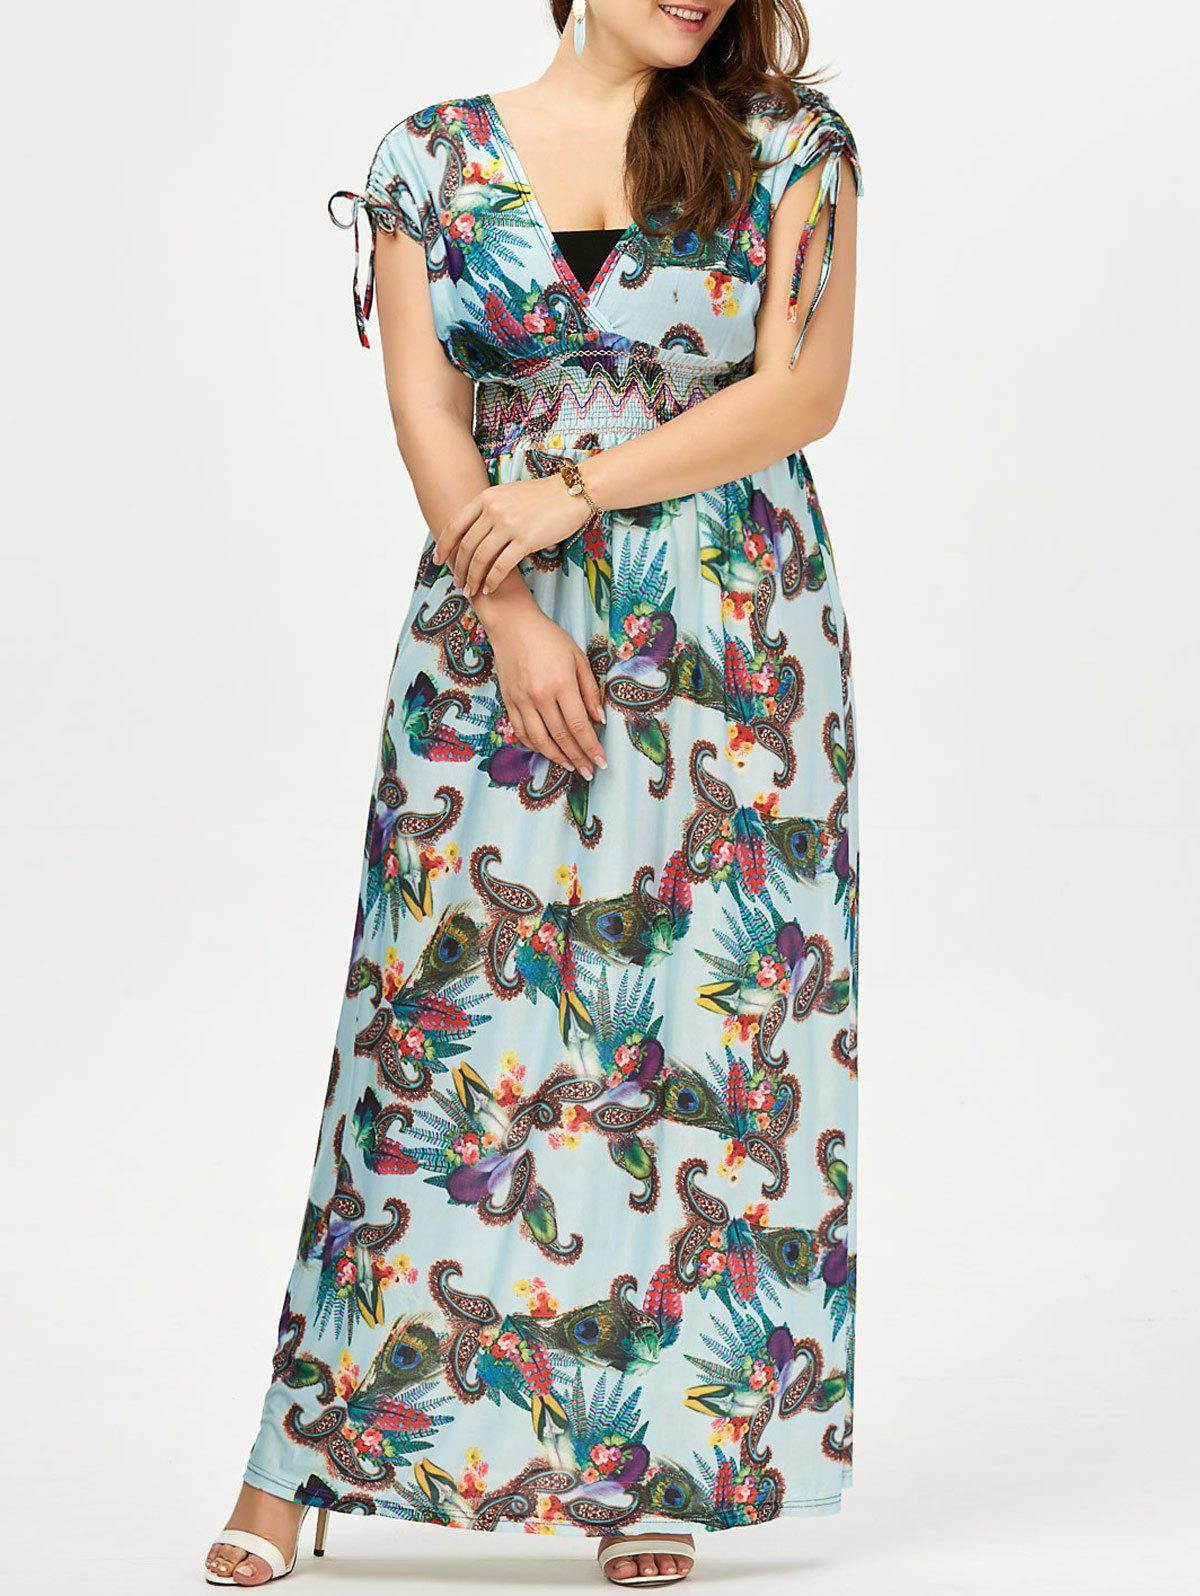 Plus Size Bohemian Printed Maxi Dress Surplice - Pers 3XL